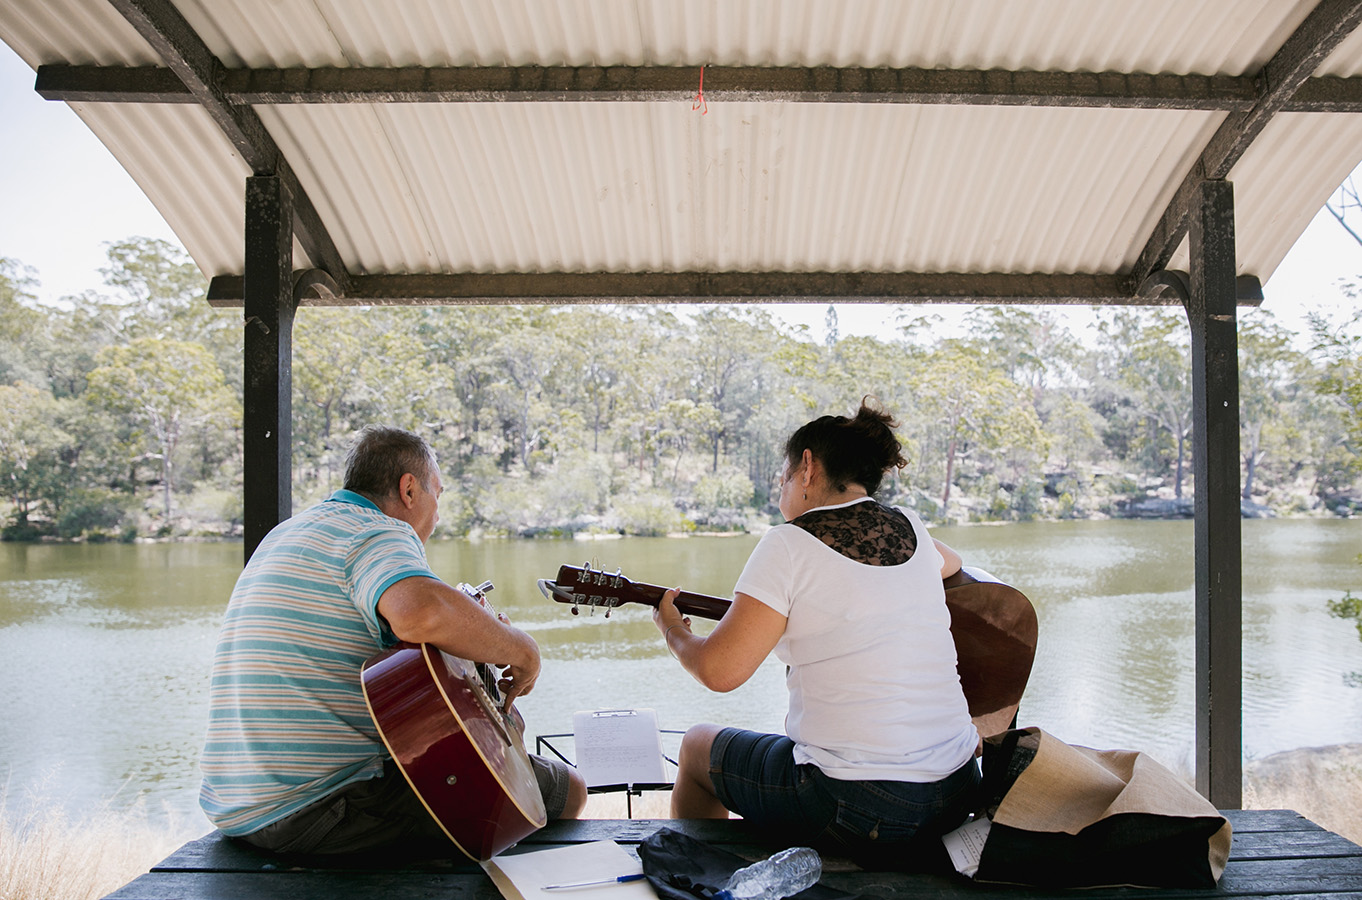 Playing guitars at Lake Parramatta